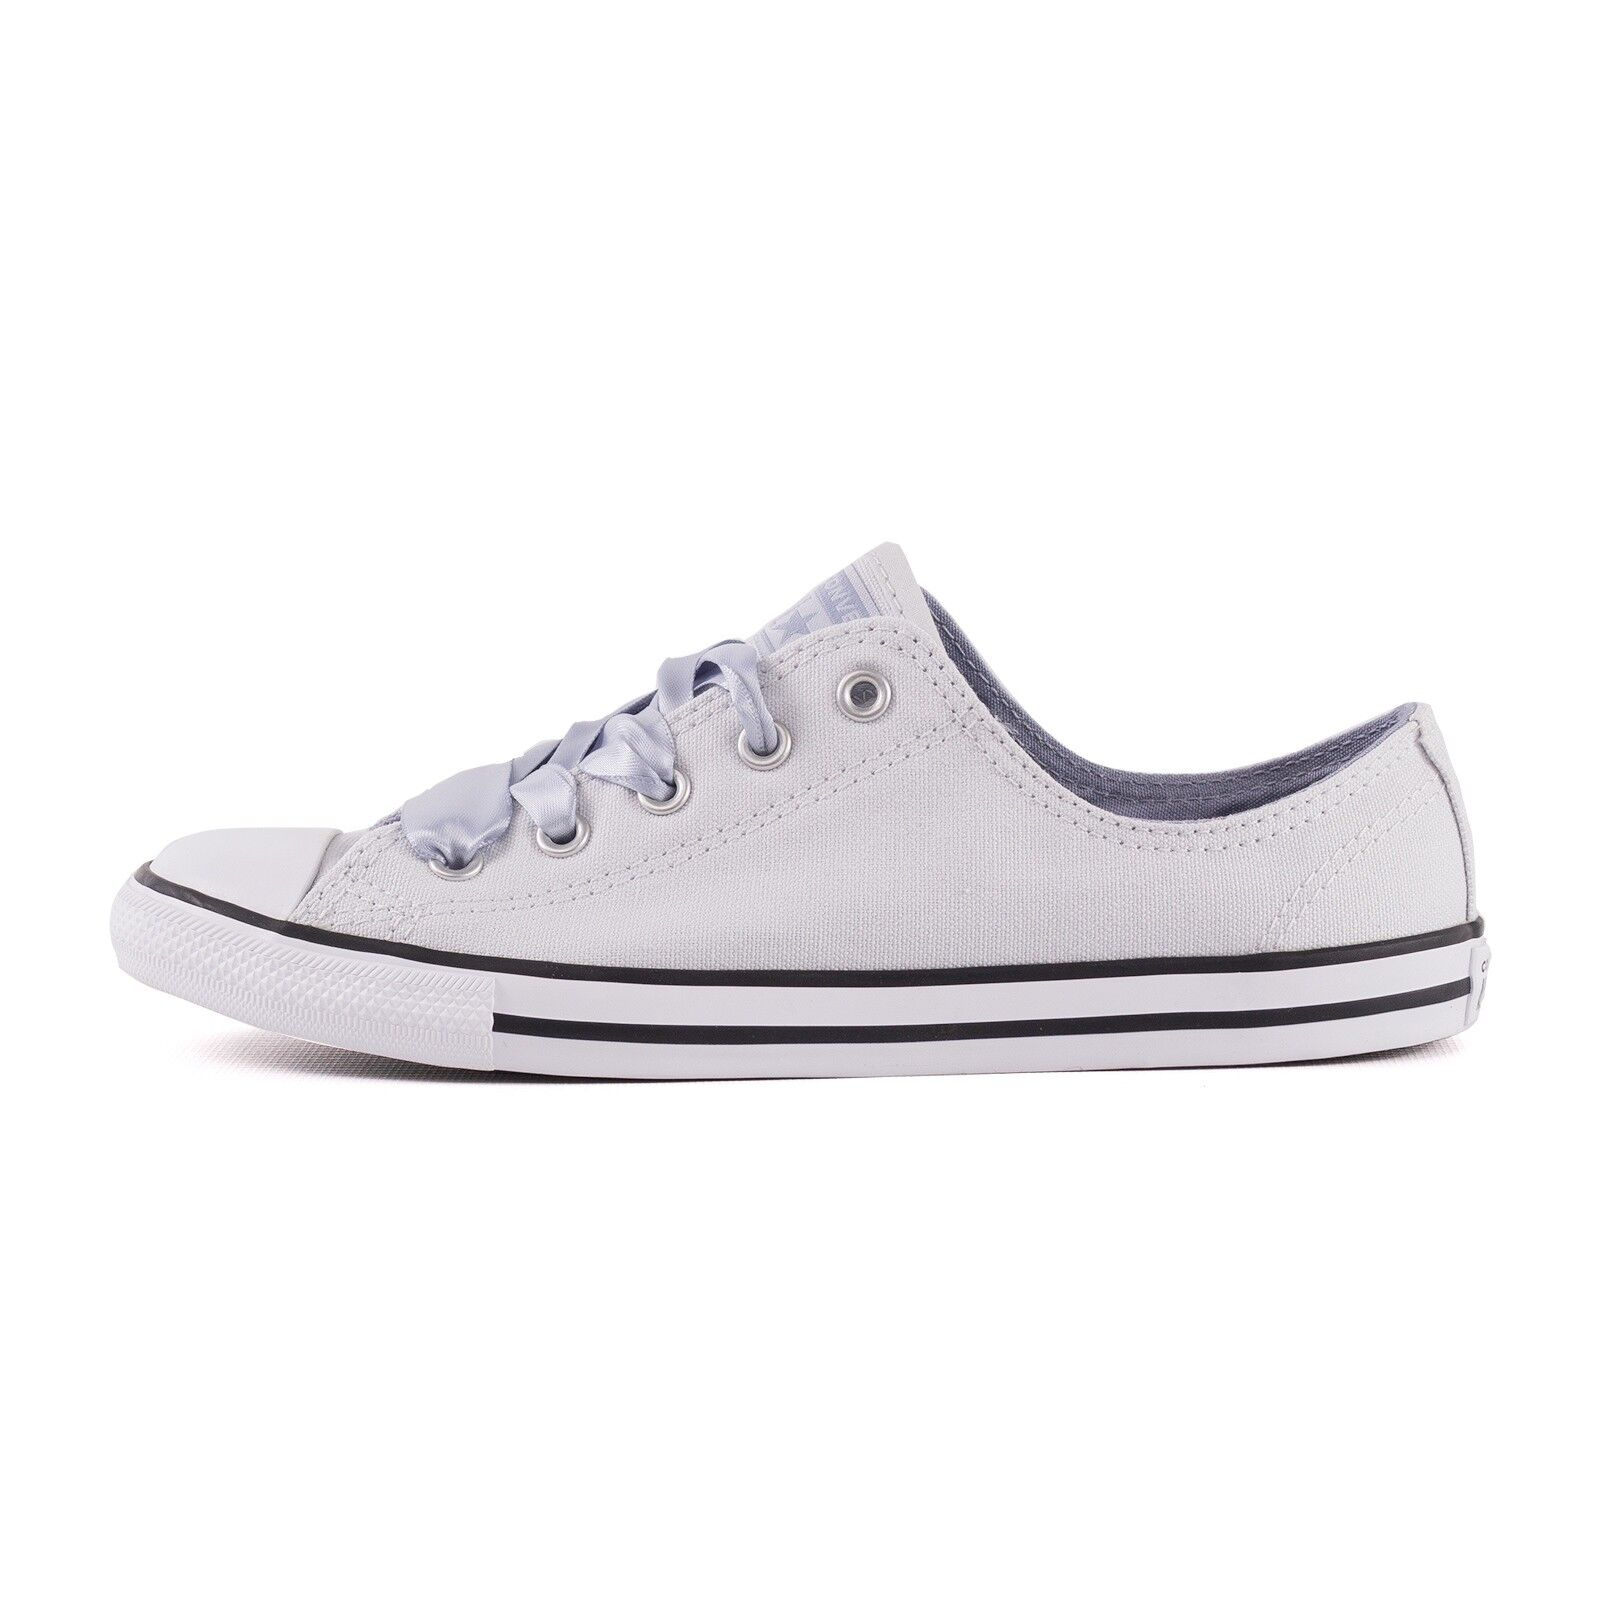 Converse verres DAINTY OX chaussures femmes Chaussure Turnchaussures gris Navy 51440